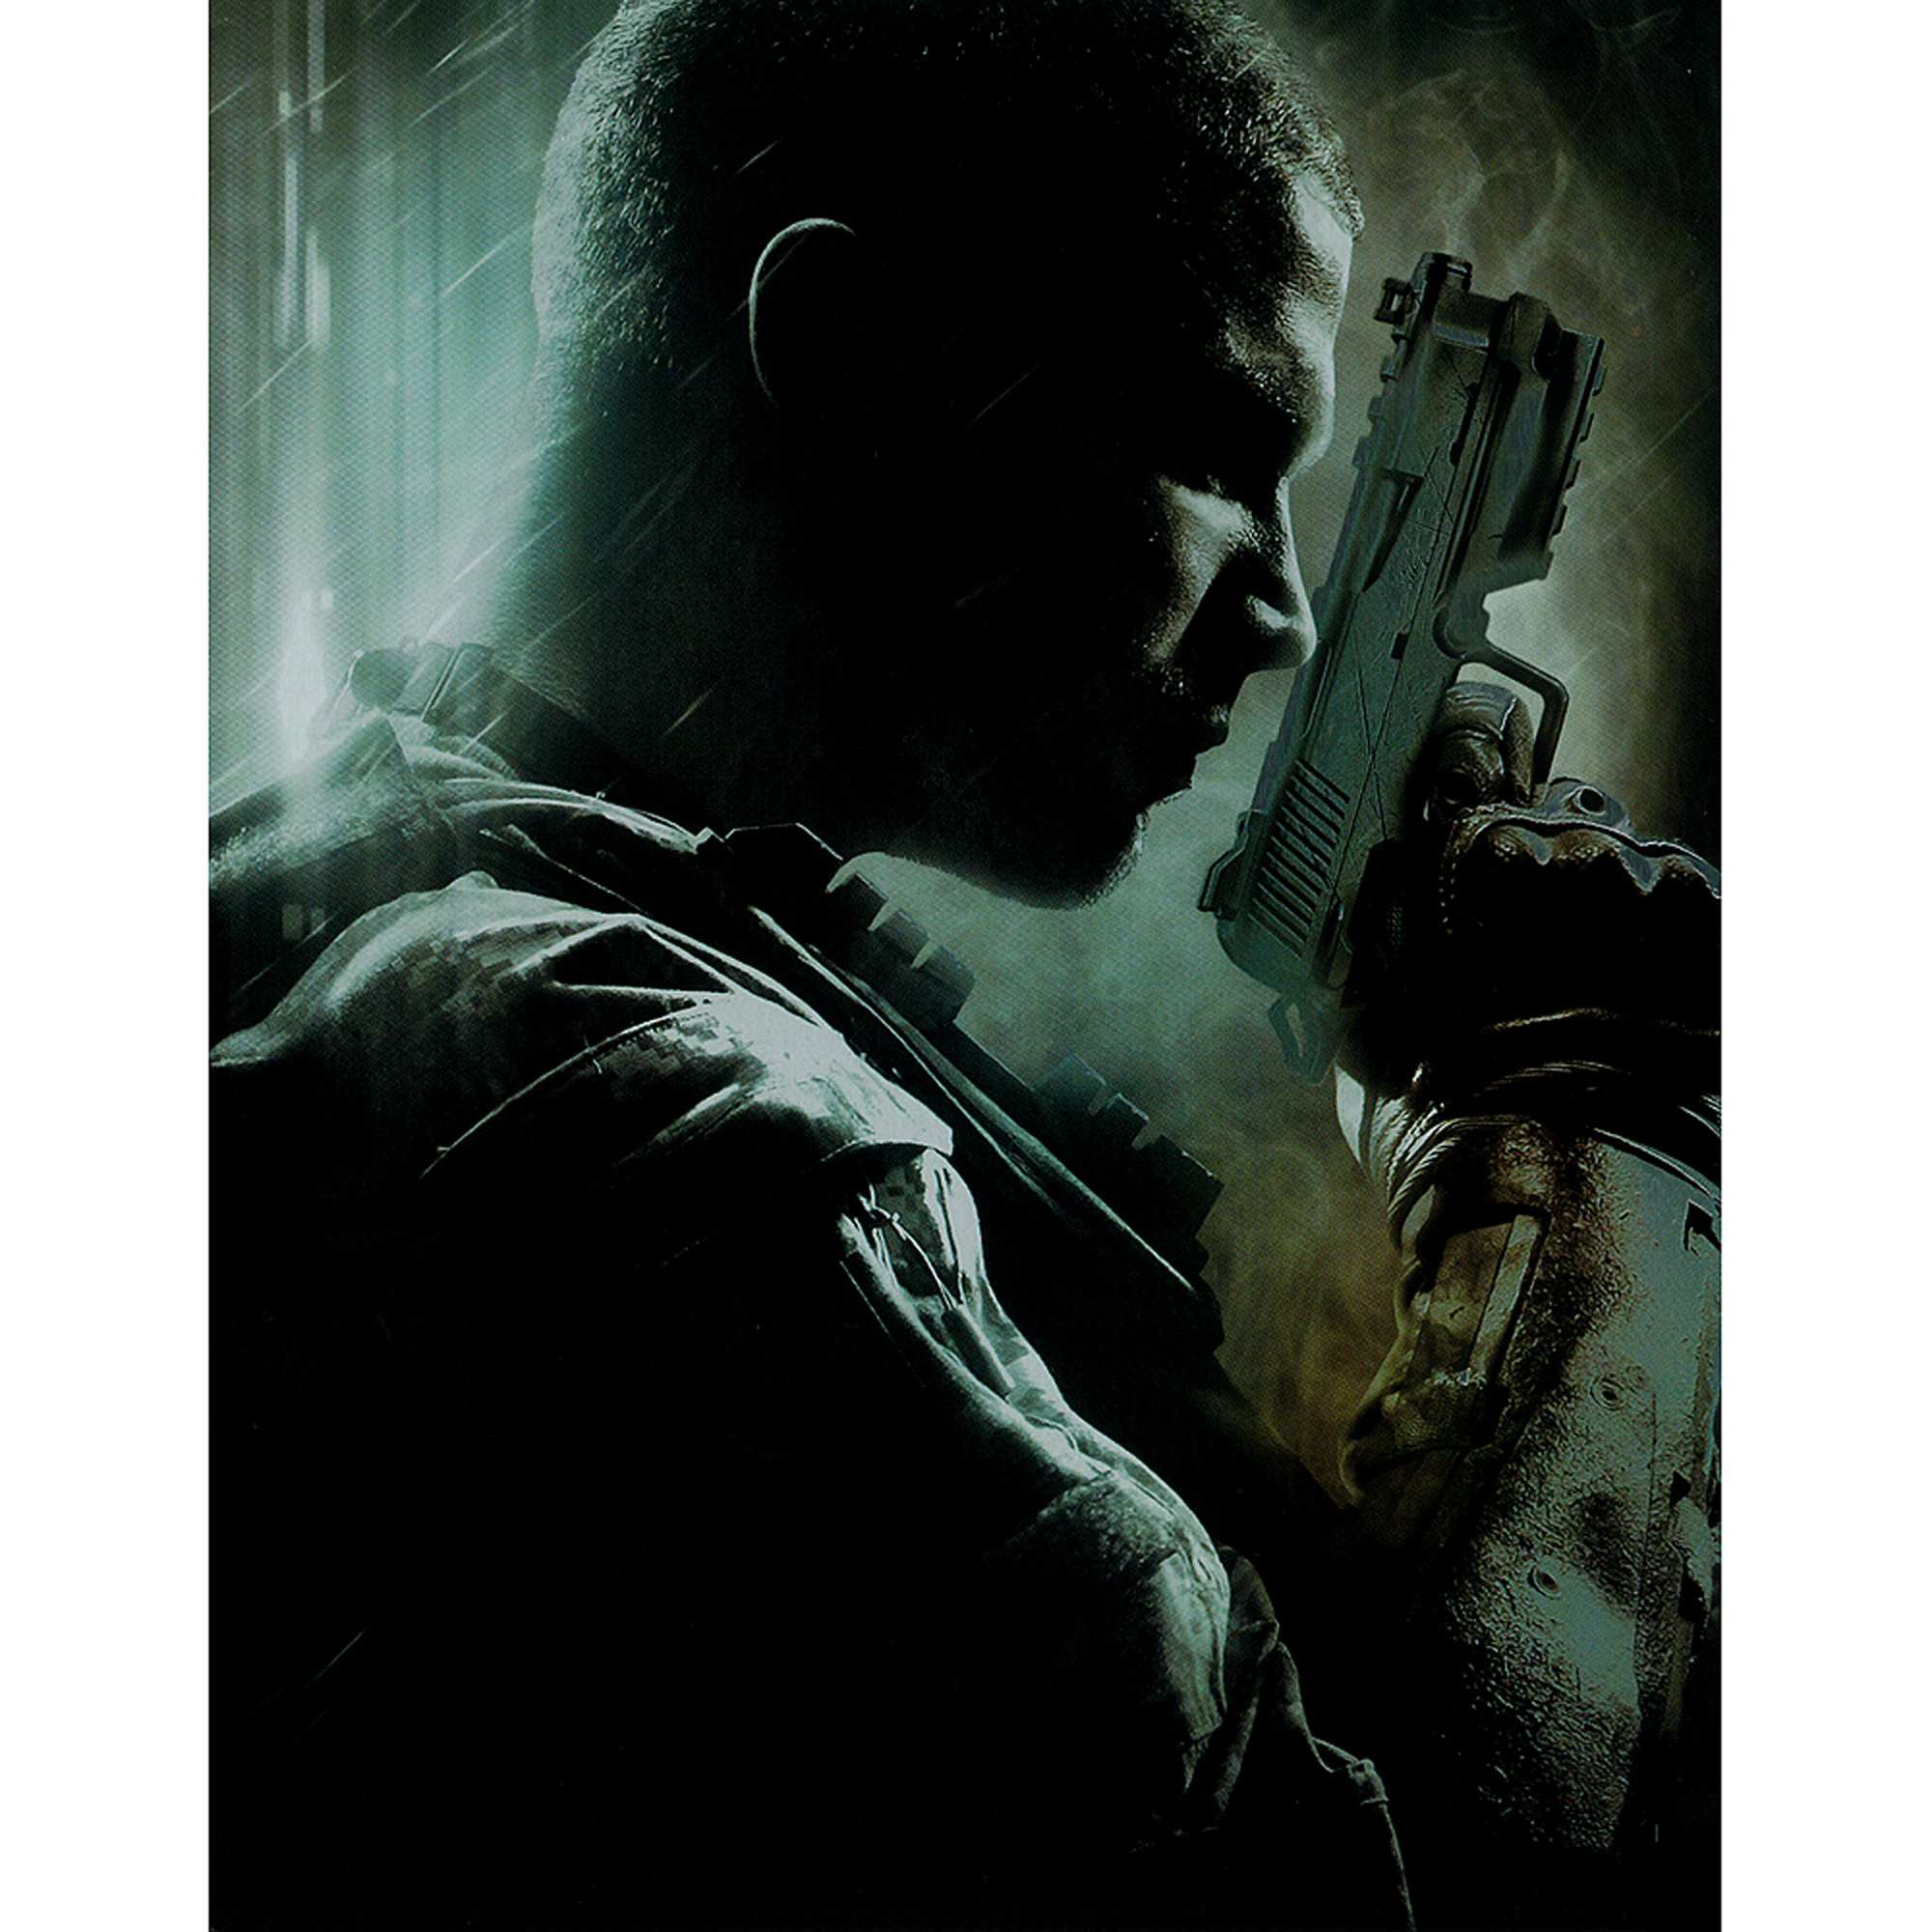 Call Of Duty: Black Ops 2 (Hardened Edition) (Xbox 360)